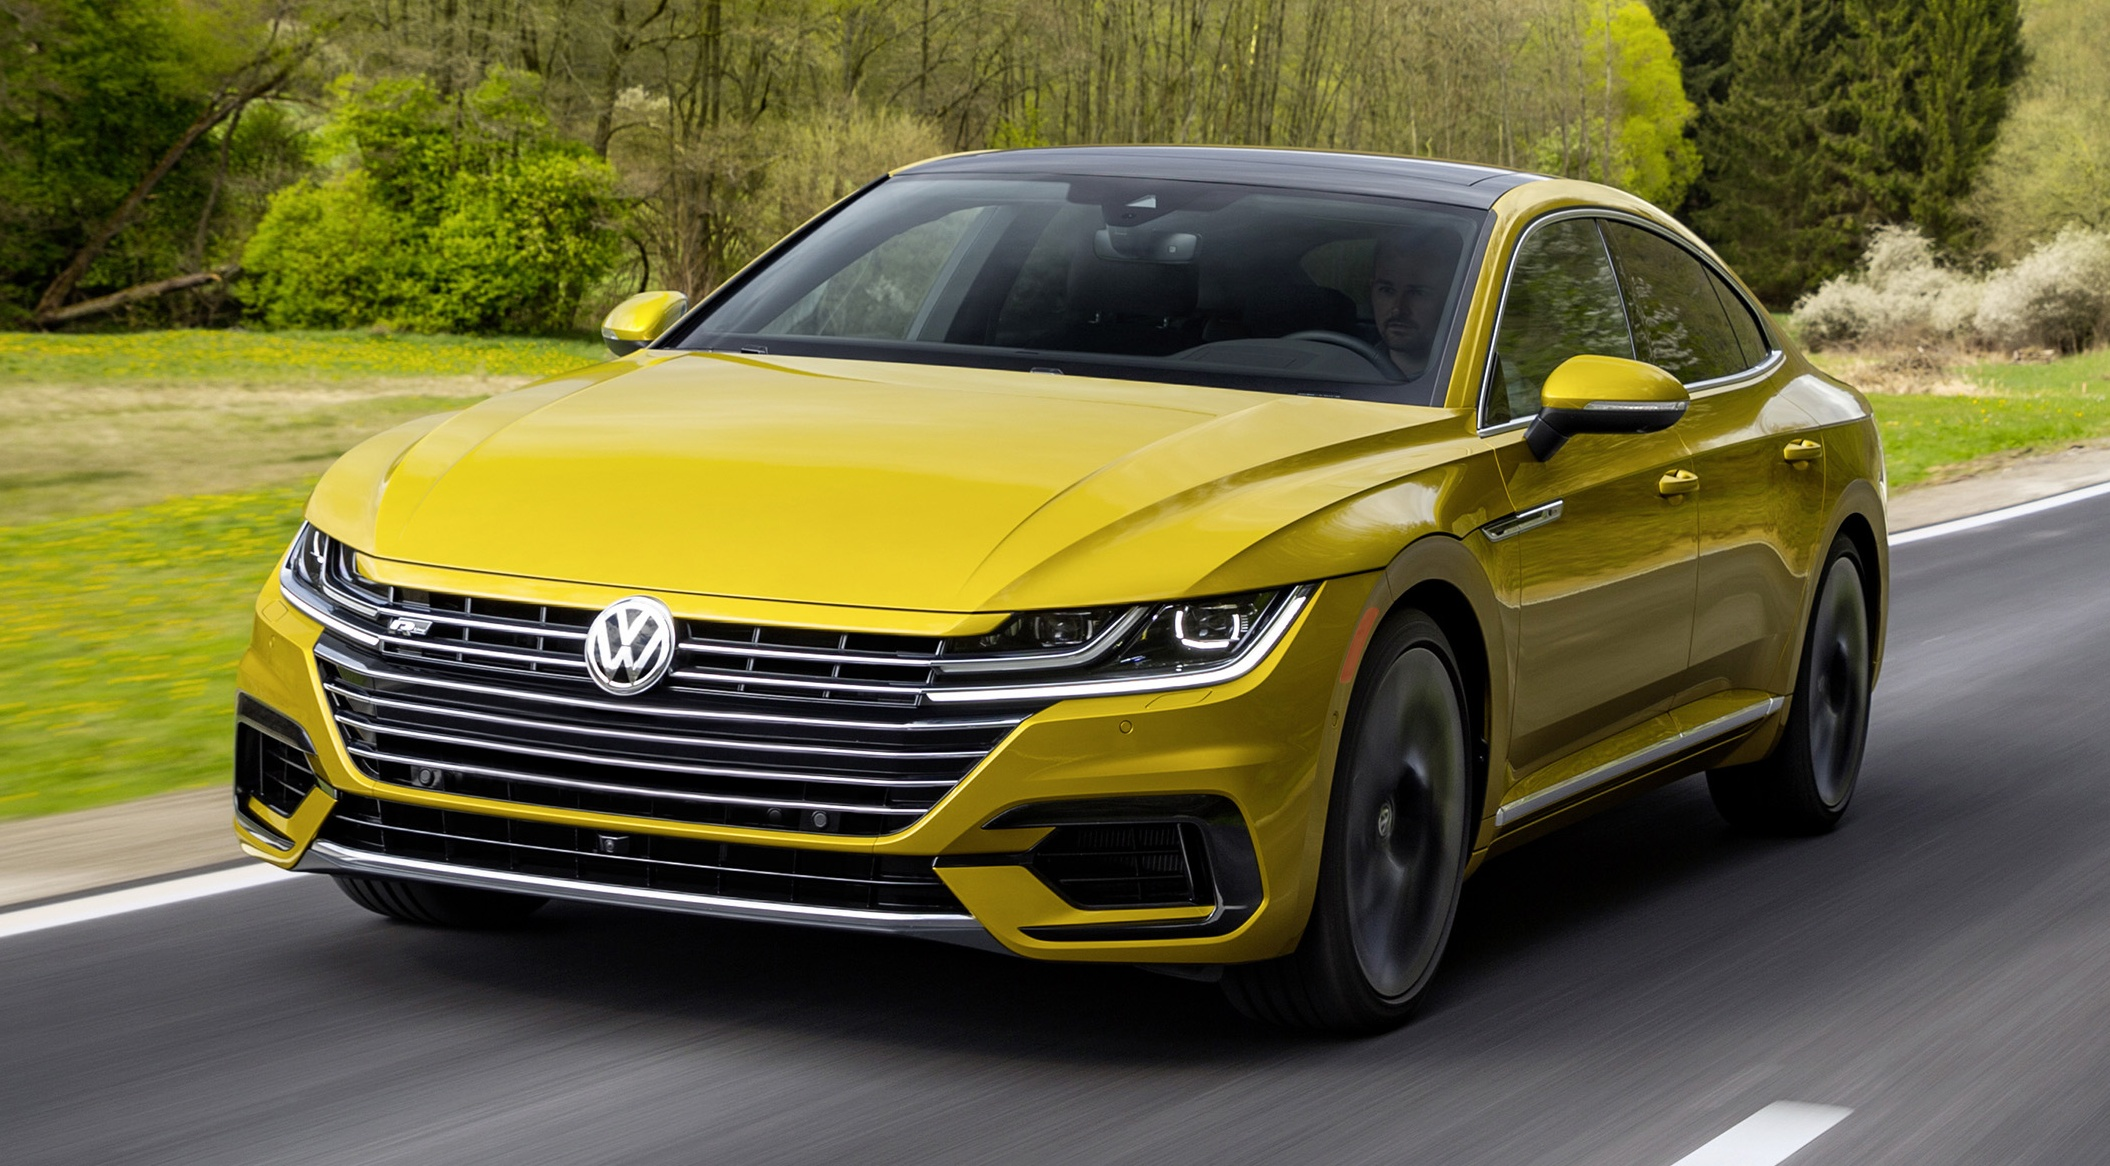 volkswagen arteon gains r line package in the u s paul tan image 793585. Black Bedroom Furniture Sets. Home Design Ideas